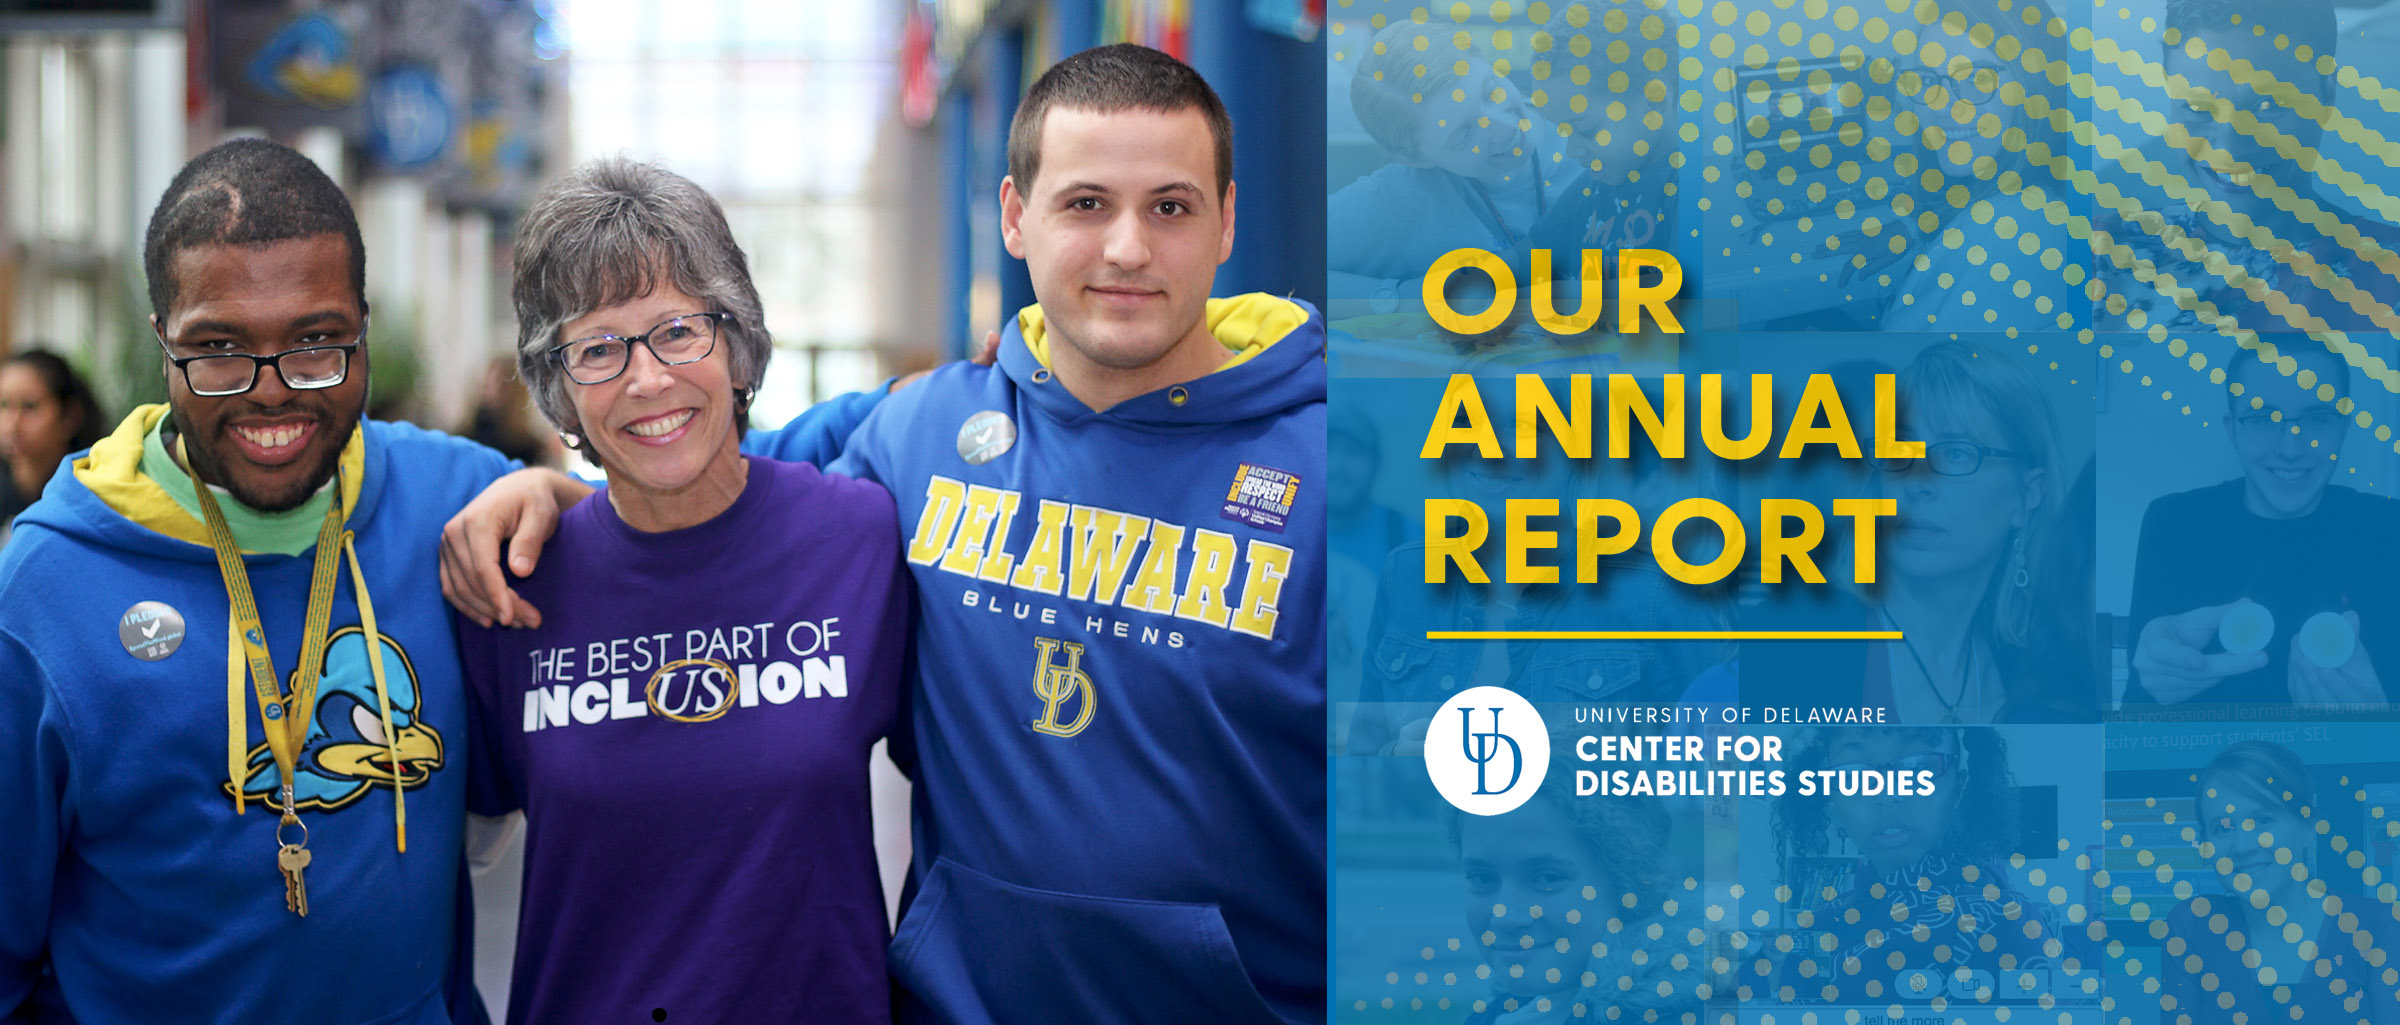 Text reads Our Annual Report accompanied by the Center for Disabilities Studies logo. The Annual Report cover photo is displayed to the left. In it, a female educator with short gray hair stands arm-in-arm with two young men, both wearing University of Delaware branded sweatshirts. The educator's shirt reads The Best Part of Inclusion with the US in the last word circled. All are smiling.